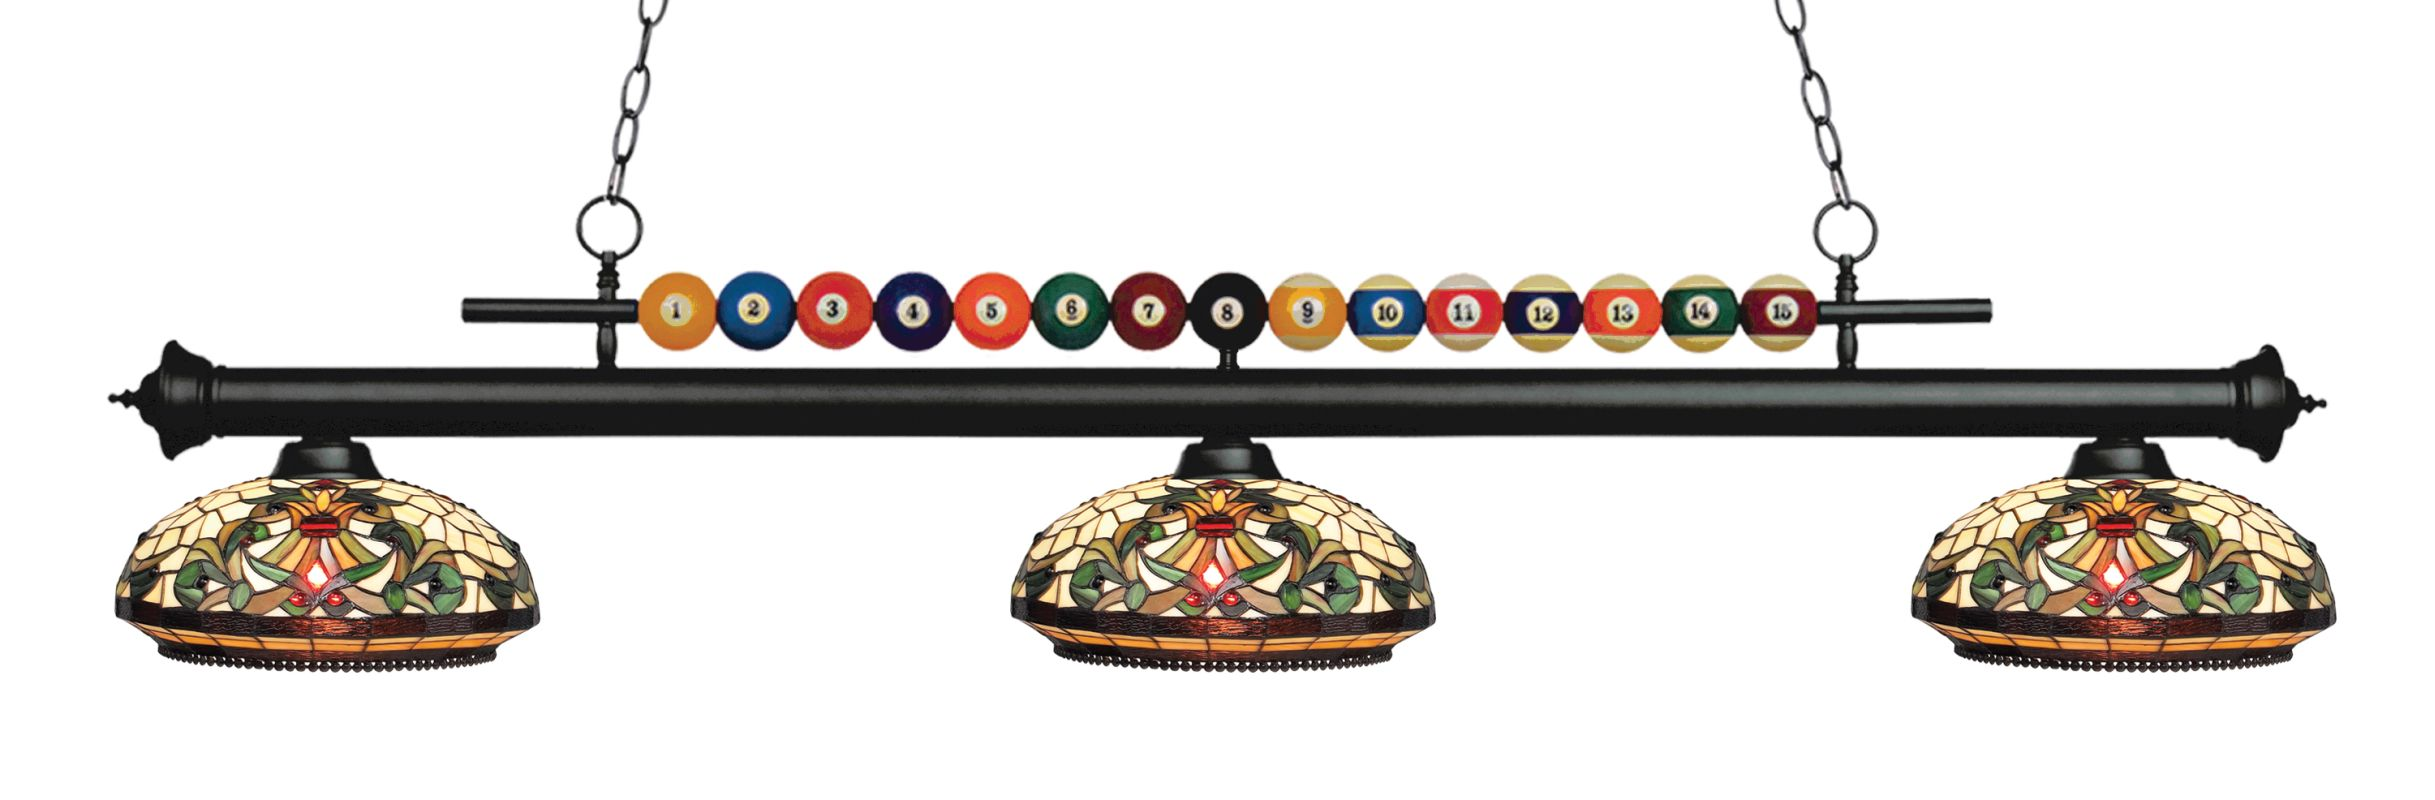 Z-Lite 170-Z14-34 Shark 3 Light Billiard Chandelier with Multi-Colored Sale $1018.00 ITEM: bci2630389 ID#:170MB-Z14-34 UPC: 685659049503 :